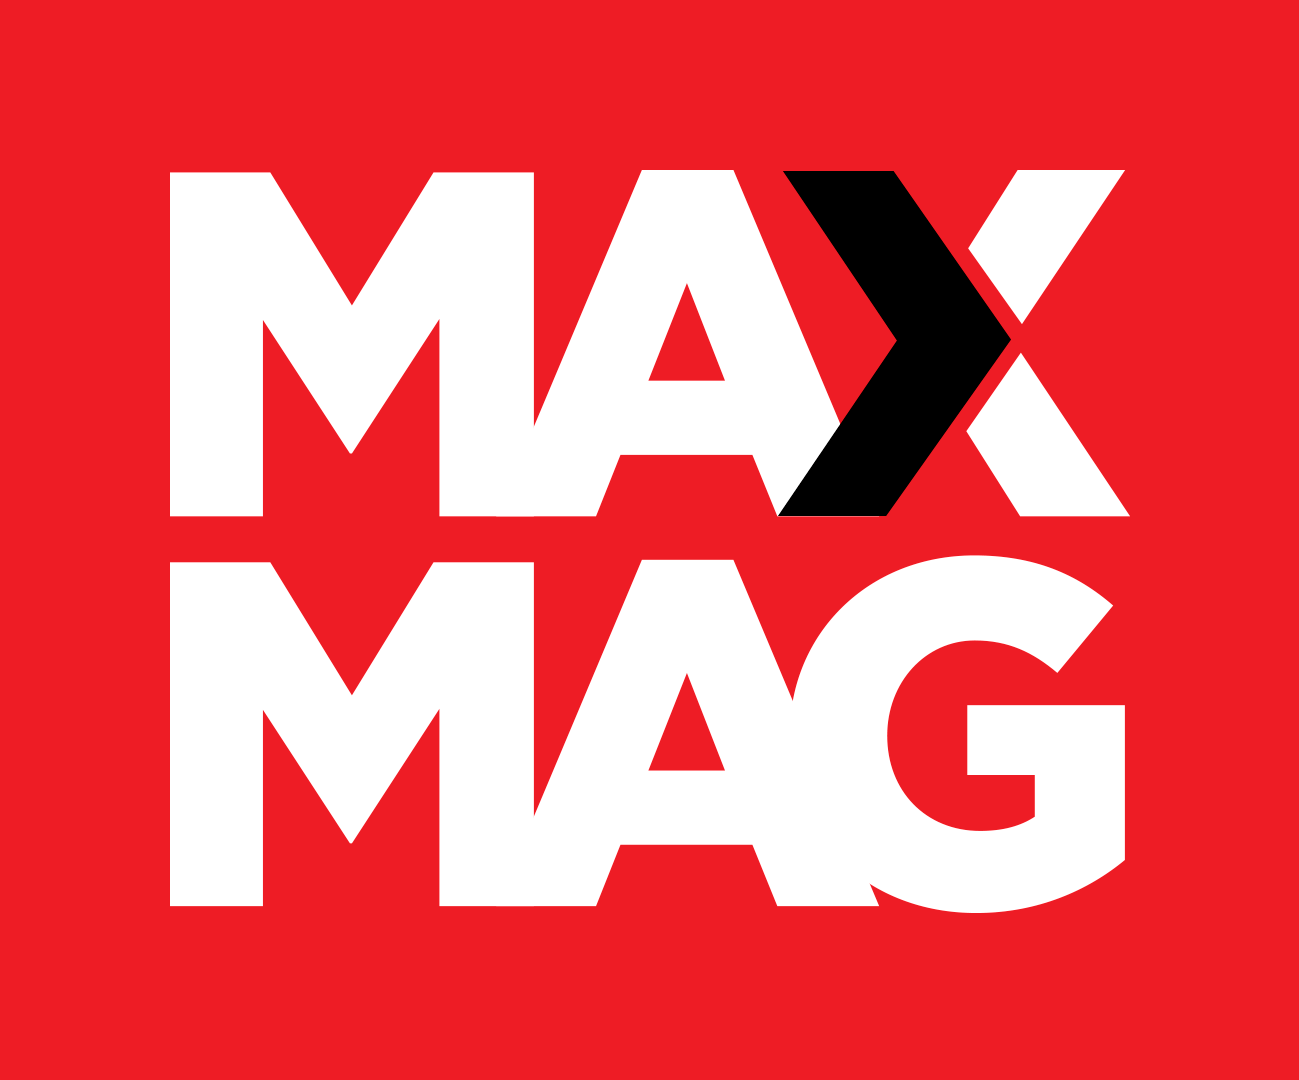 MAXMAG | Πολιτισμός, Τέχνες, Διασκέδαση, Ομορφιά